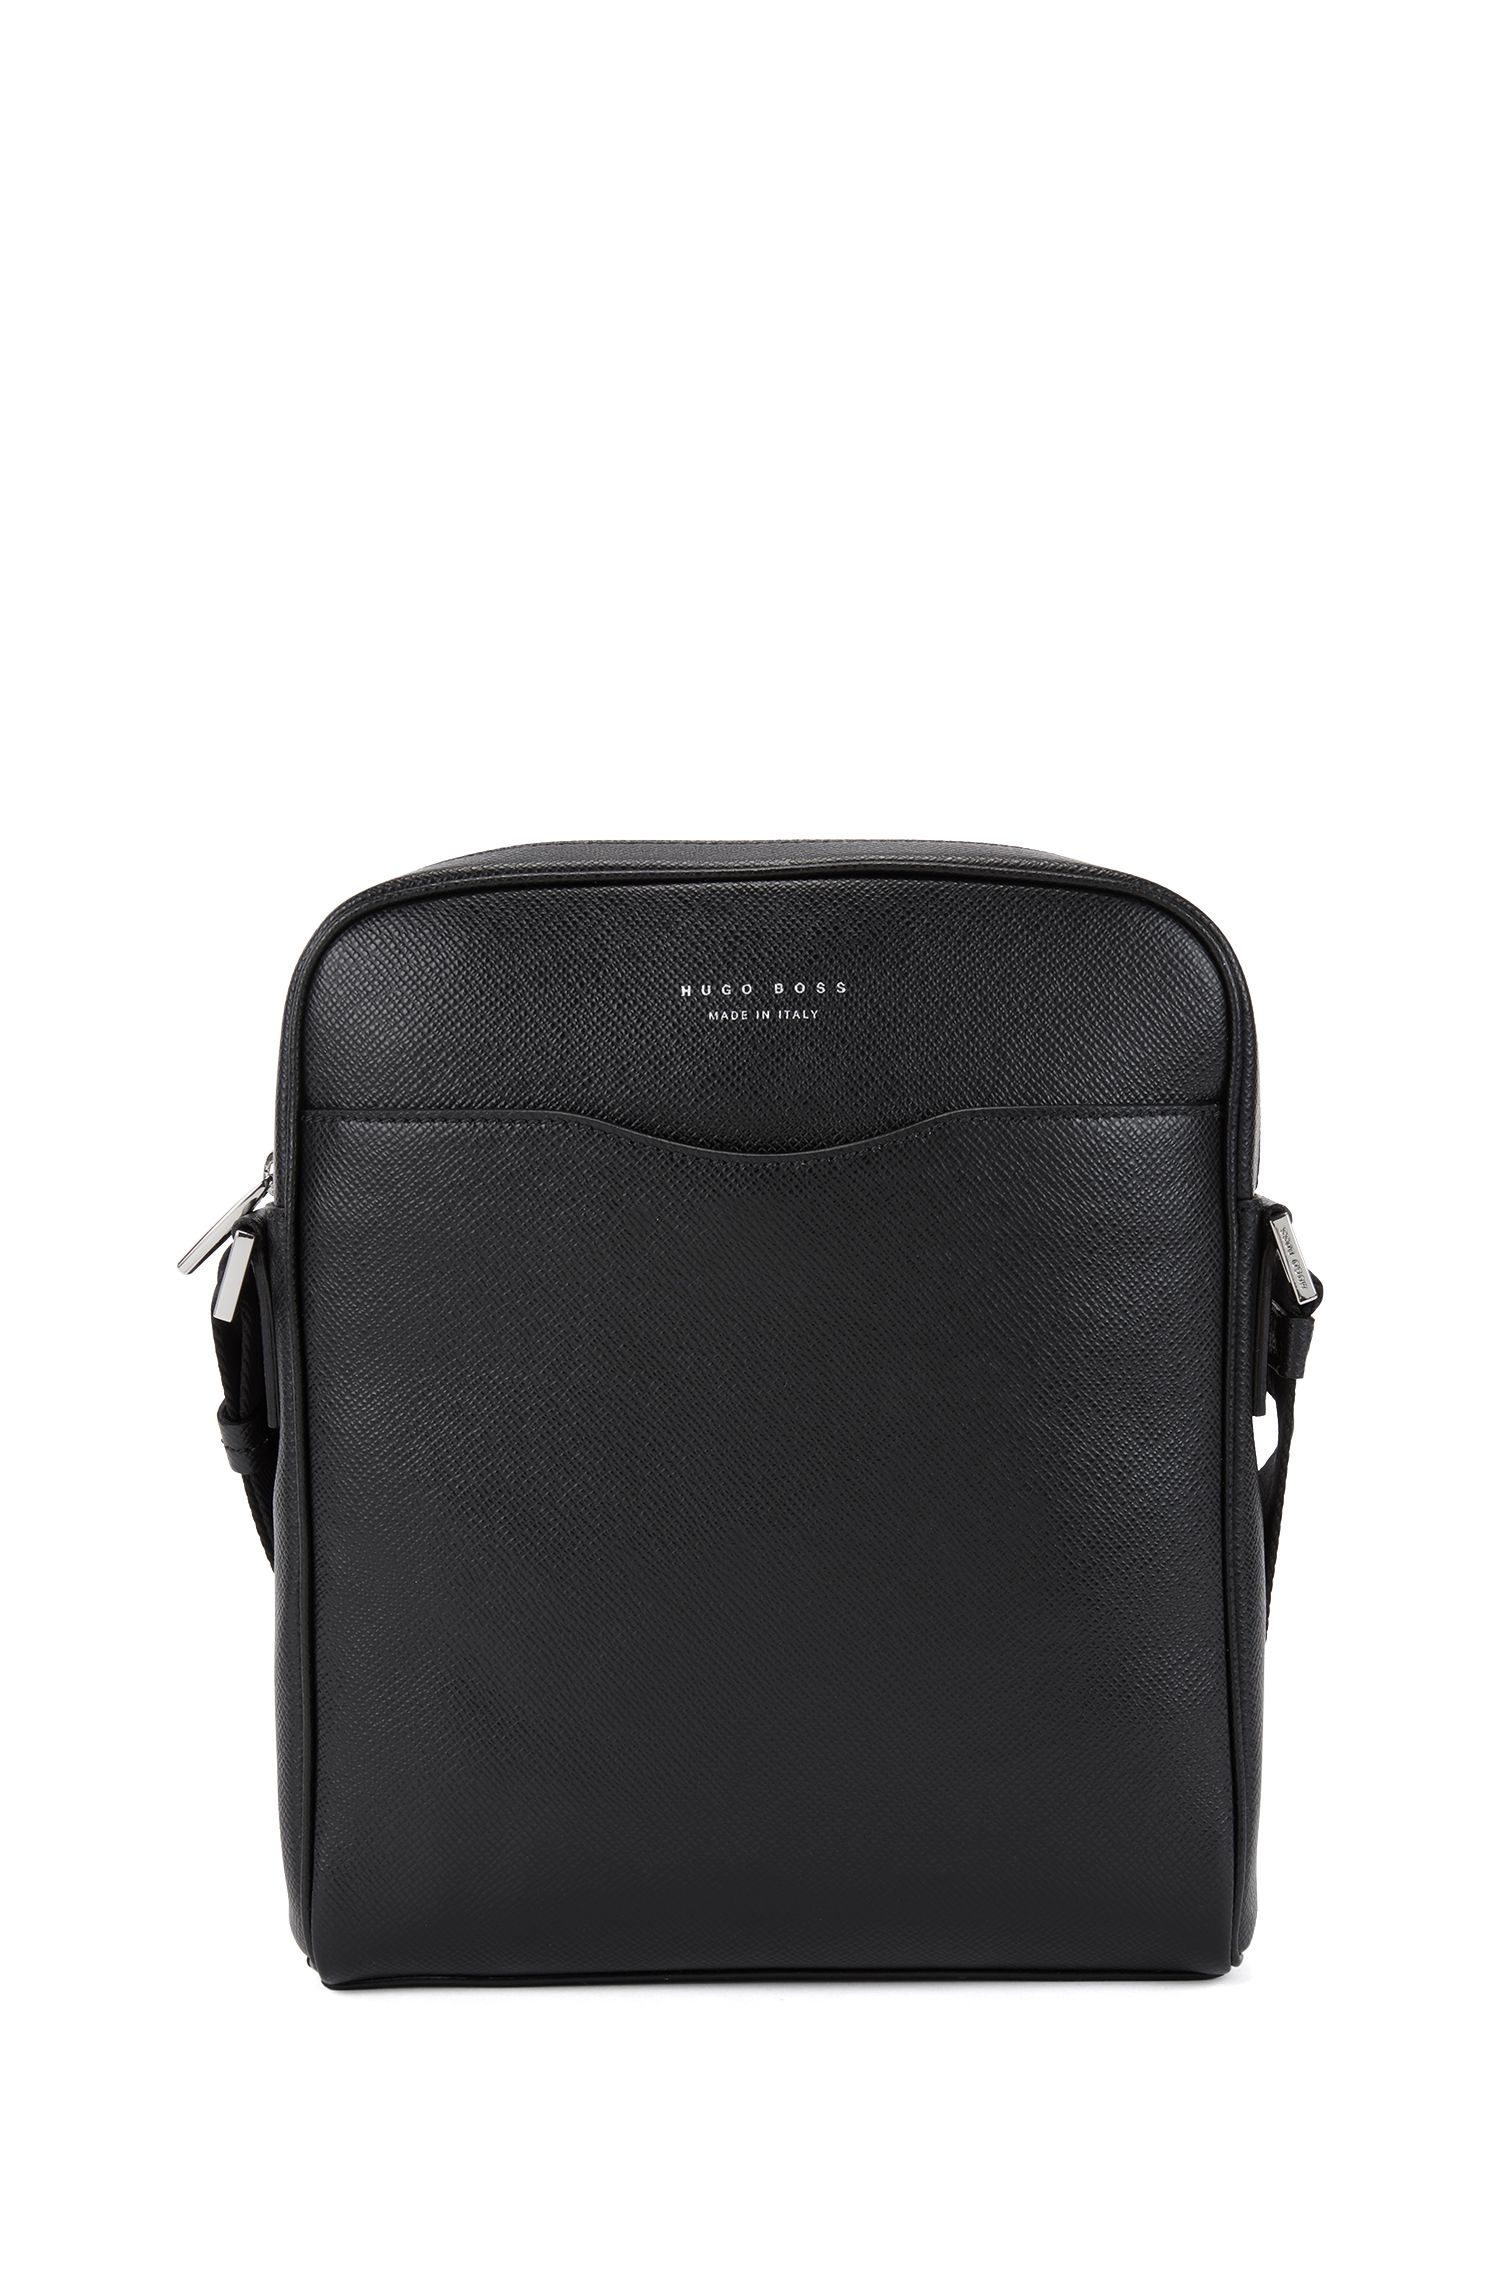 Calfskin Reporter Bag | Signature NS Zip